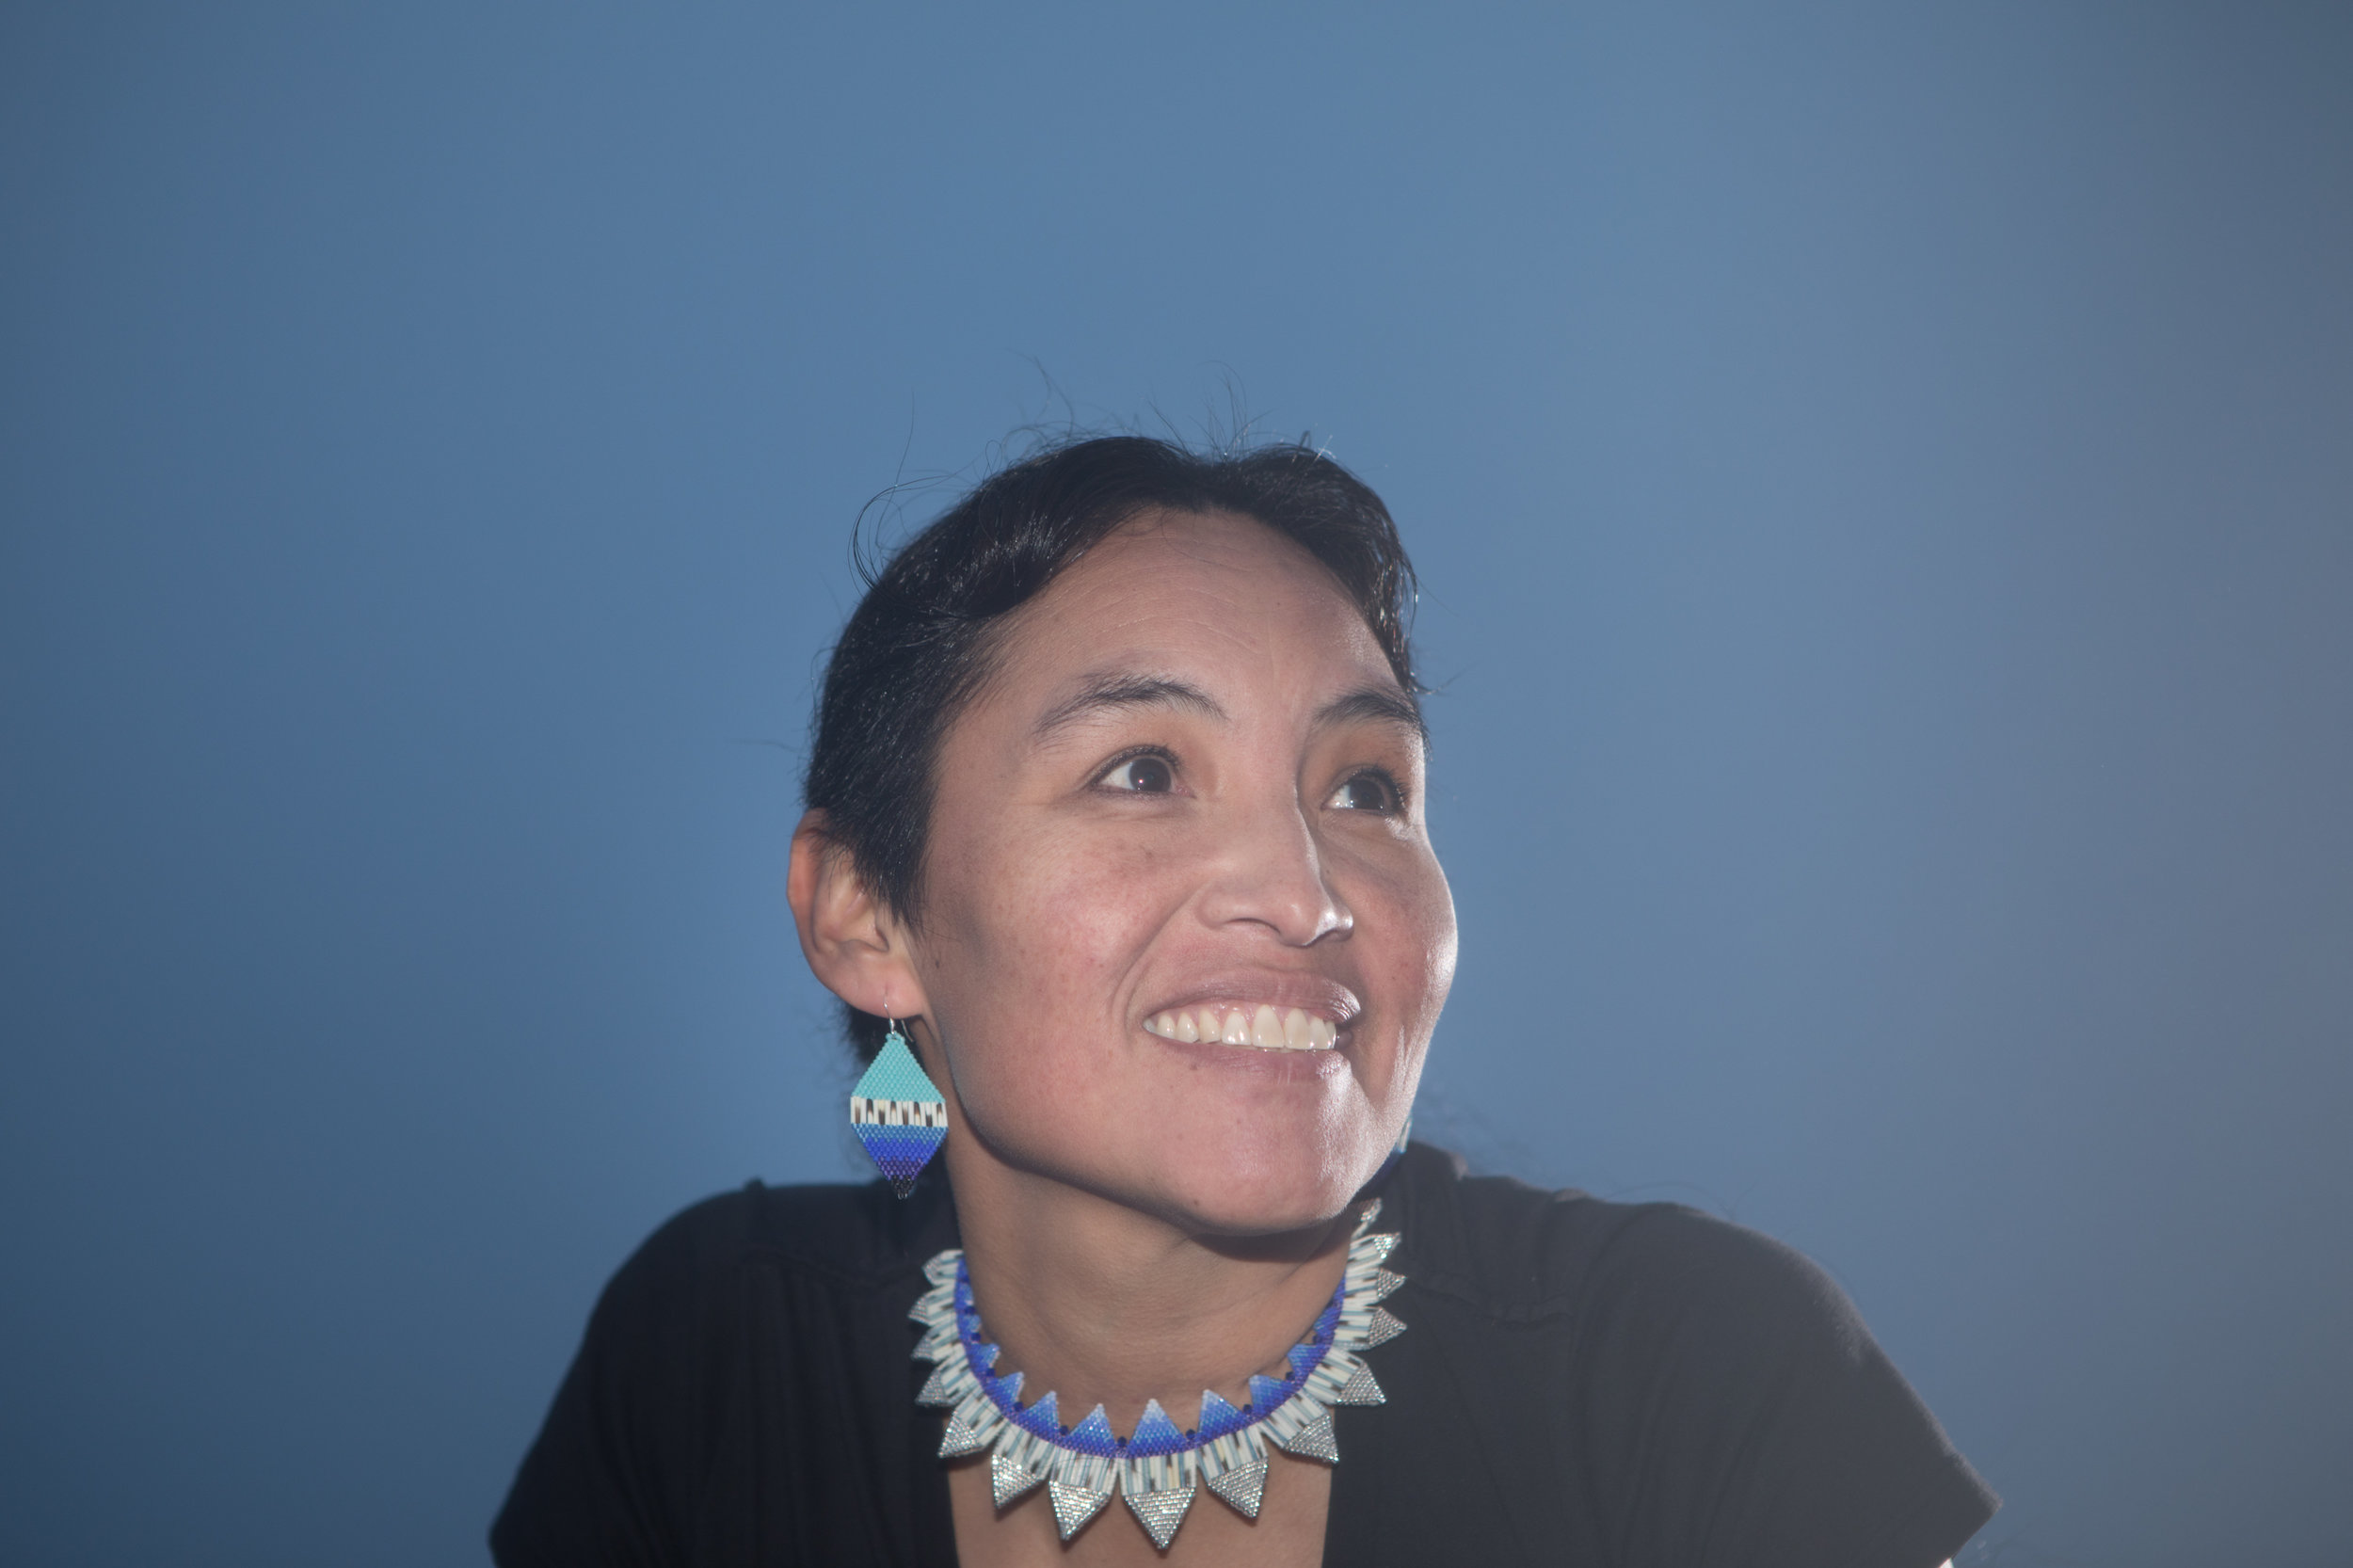 Jewellery: OceanBite Necklace, Shield Earrings. Photo courtesy of Melody Charlie